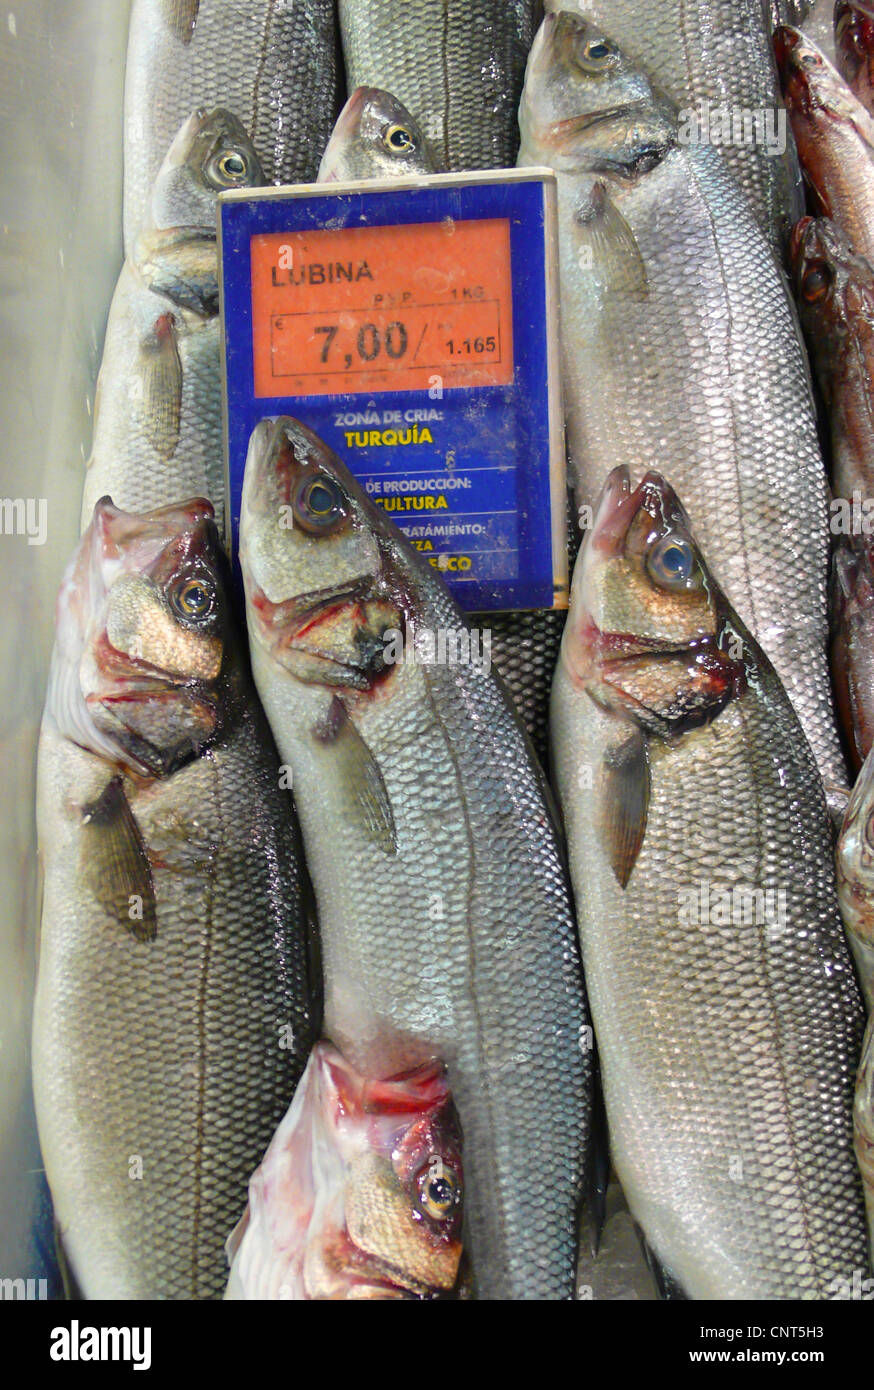 temperate perches, temperate basses (Percichthyidae, Moronidae), temperate basses from Turkey on a market in Alcudia, - Stock Image